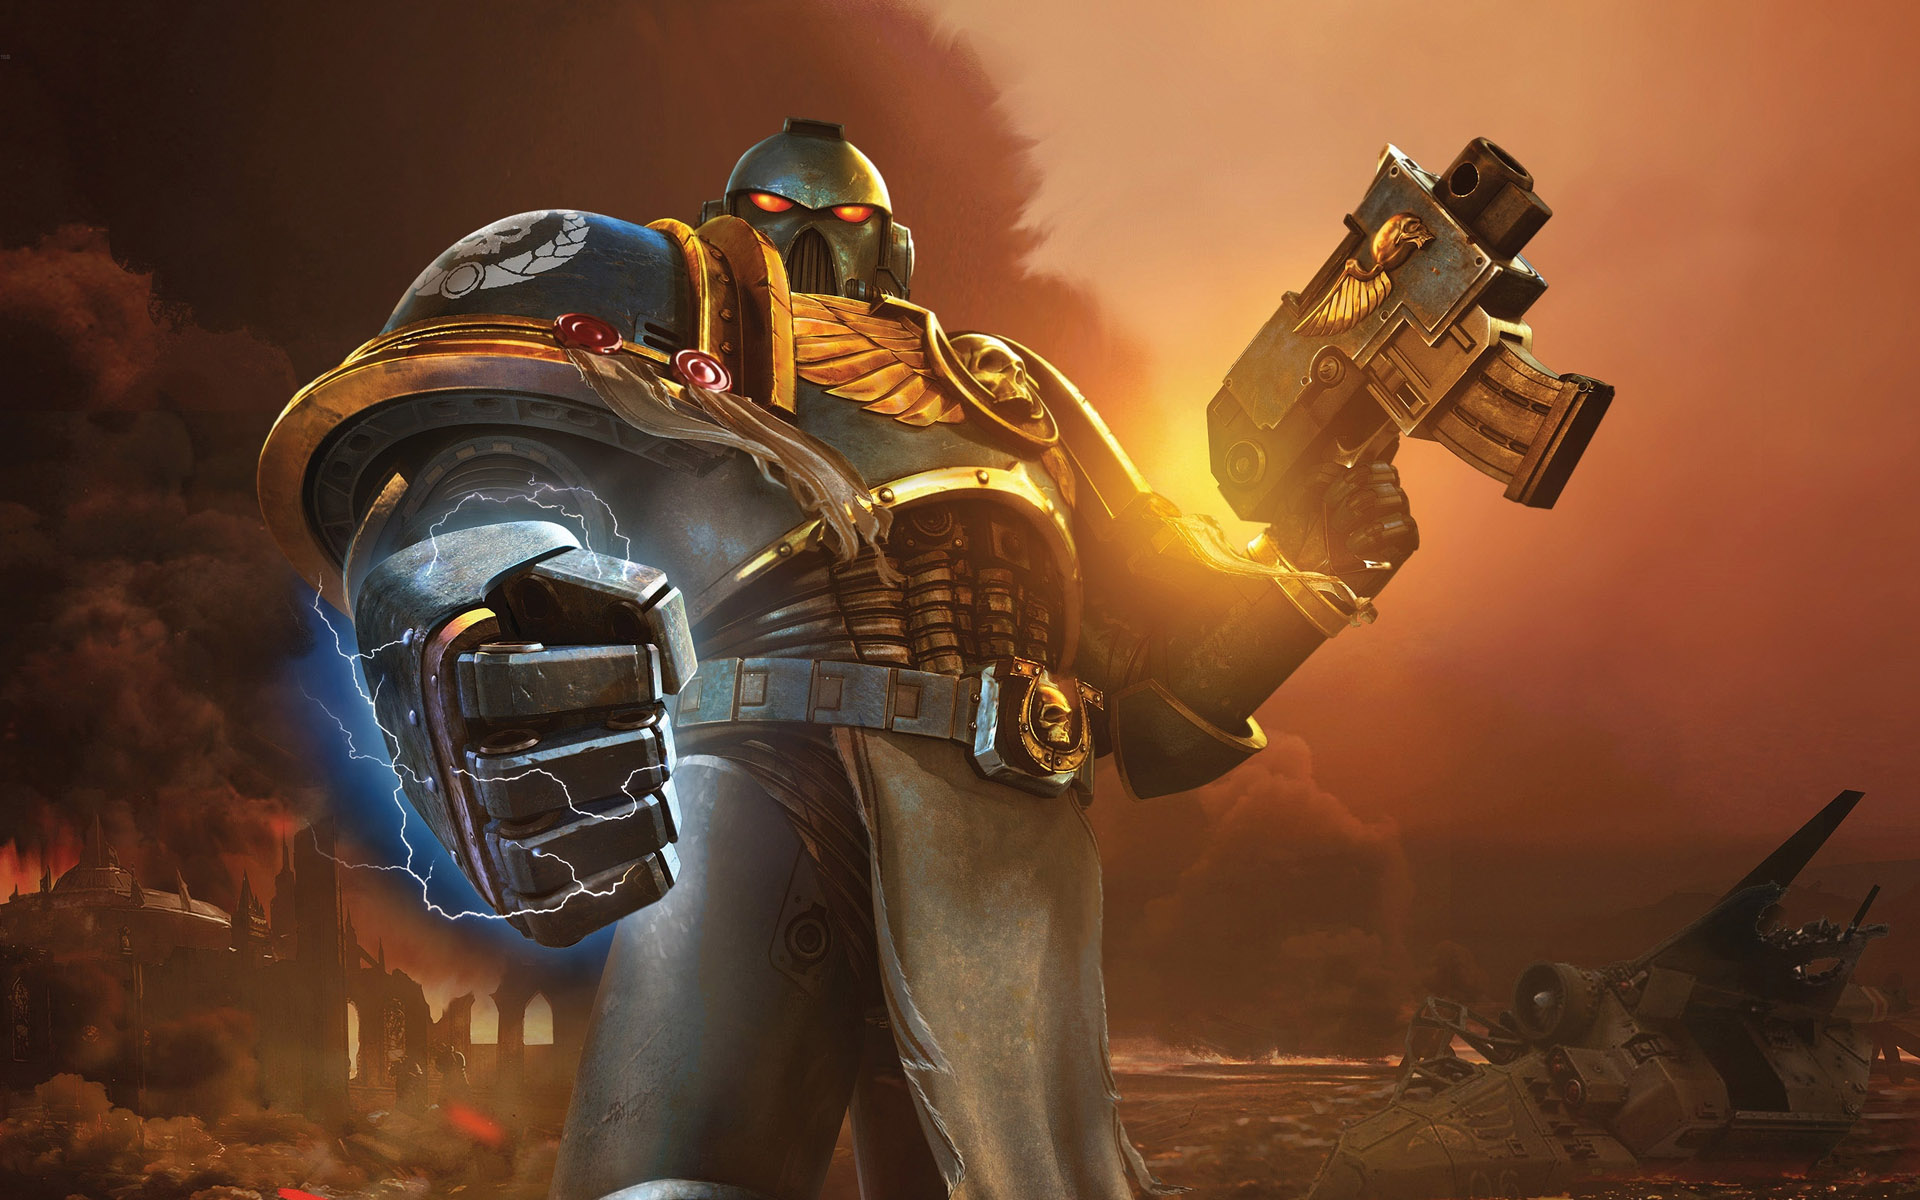 Warhammer Space Marine Wallpapers HD Wallpapers 1920x1200